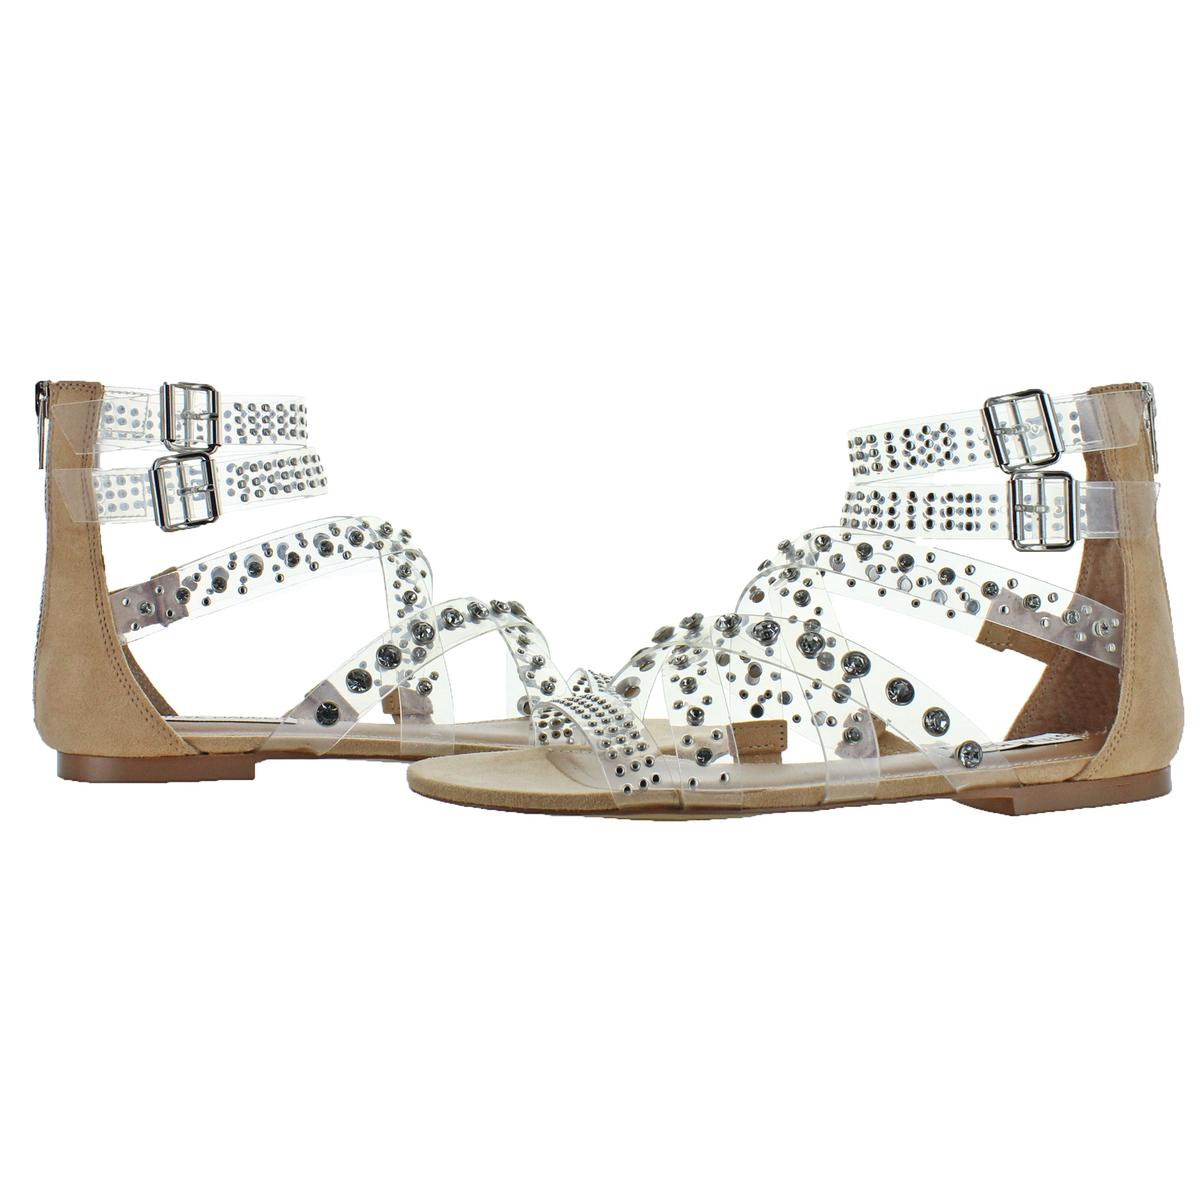 Steve-Madden-Women-039-s-Shift-Embellished-Multi-Strap-Flat-Gladiator-Sandals thumbnail 7